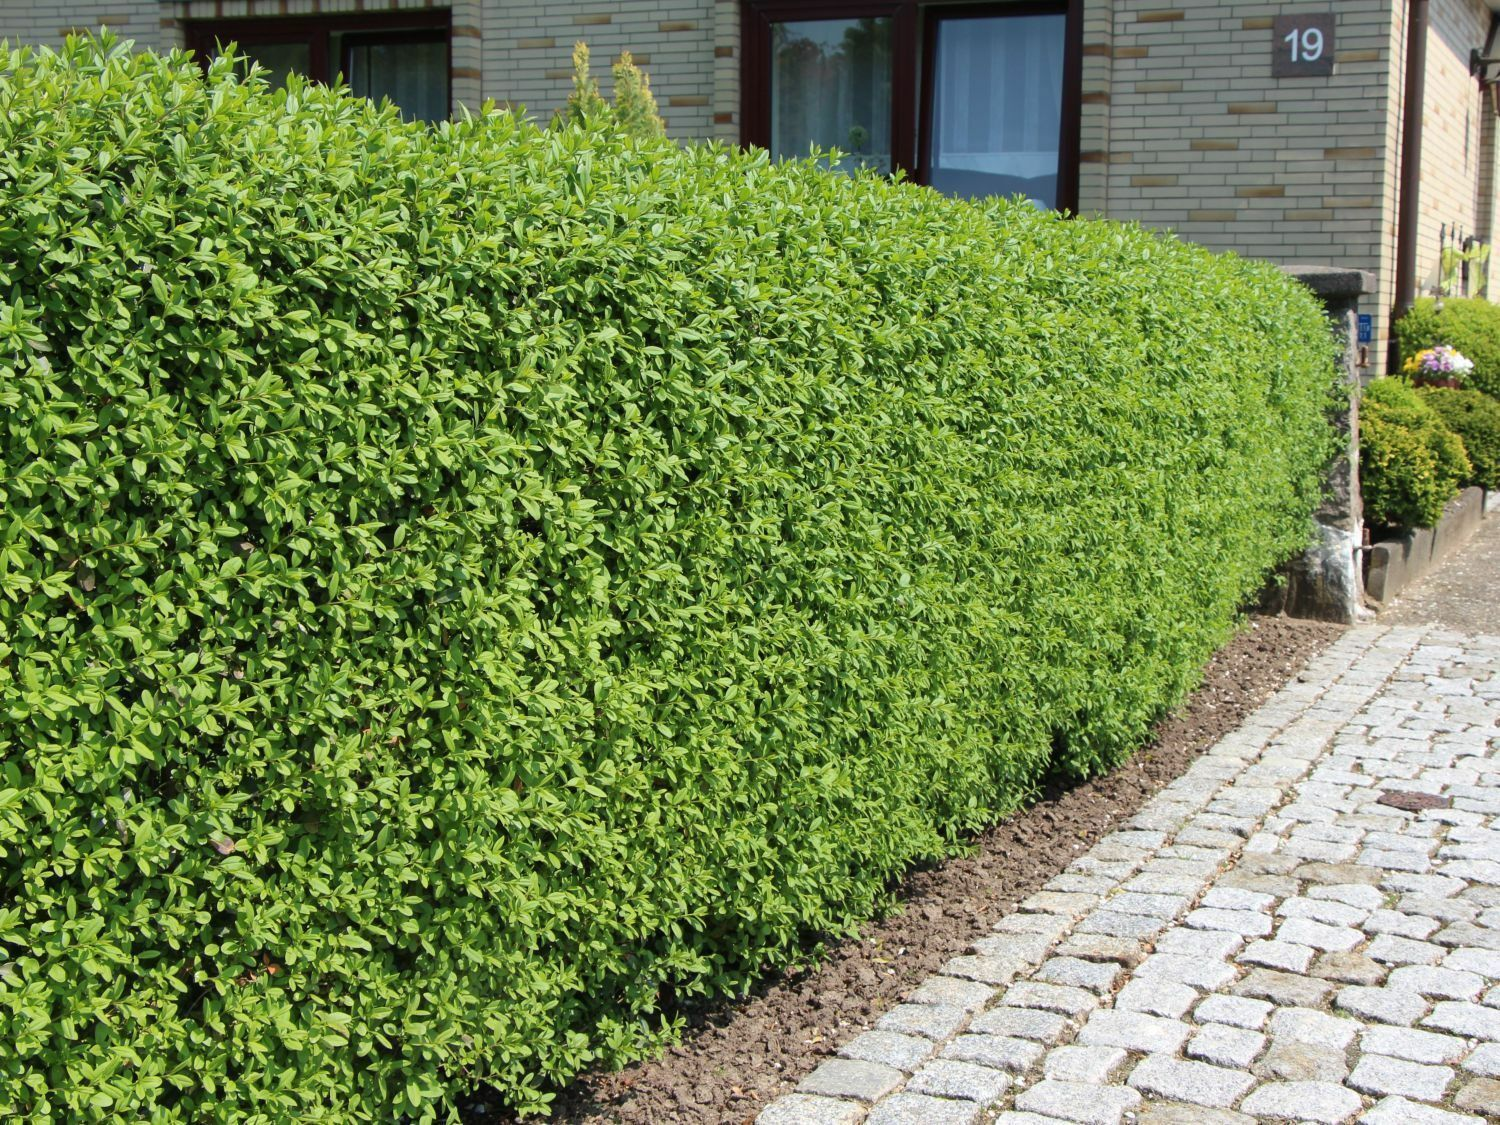 Liguster Pflanze Rätsel 10 Wild Privet Hedging Ligustrum Plants Hedge 40-60cm